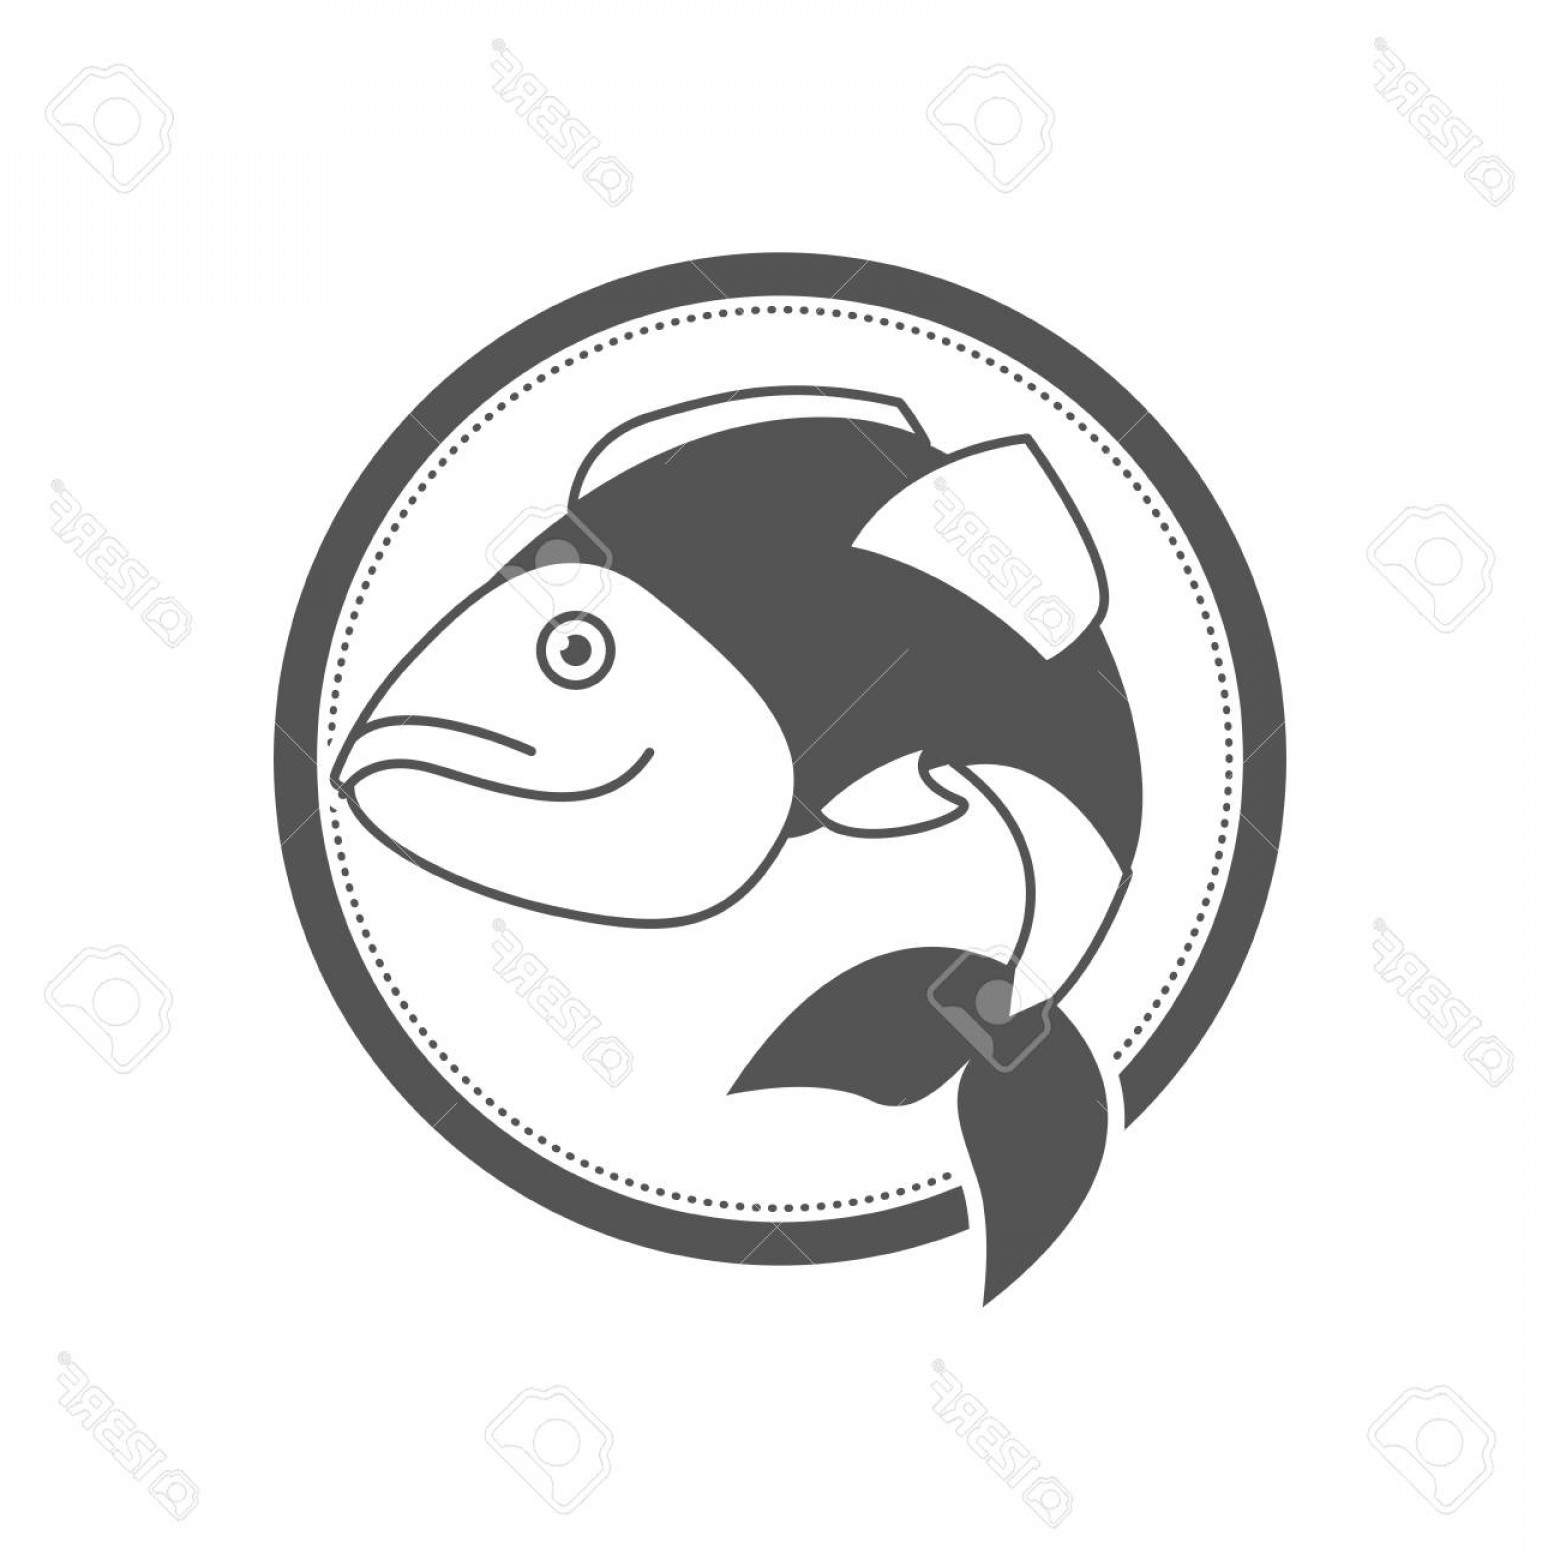 Largemouth Bass Silhouette Vector: Photostock Vector Monochrome Silhouette Circular Emblem With Largemouth Bass Fish Vector Illustration